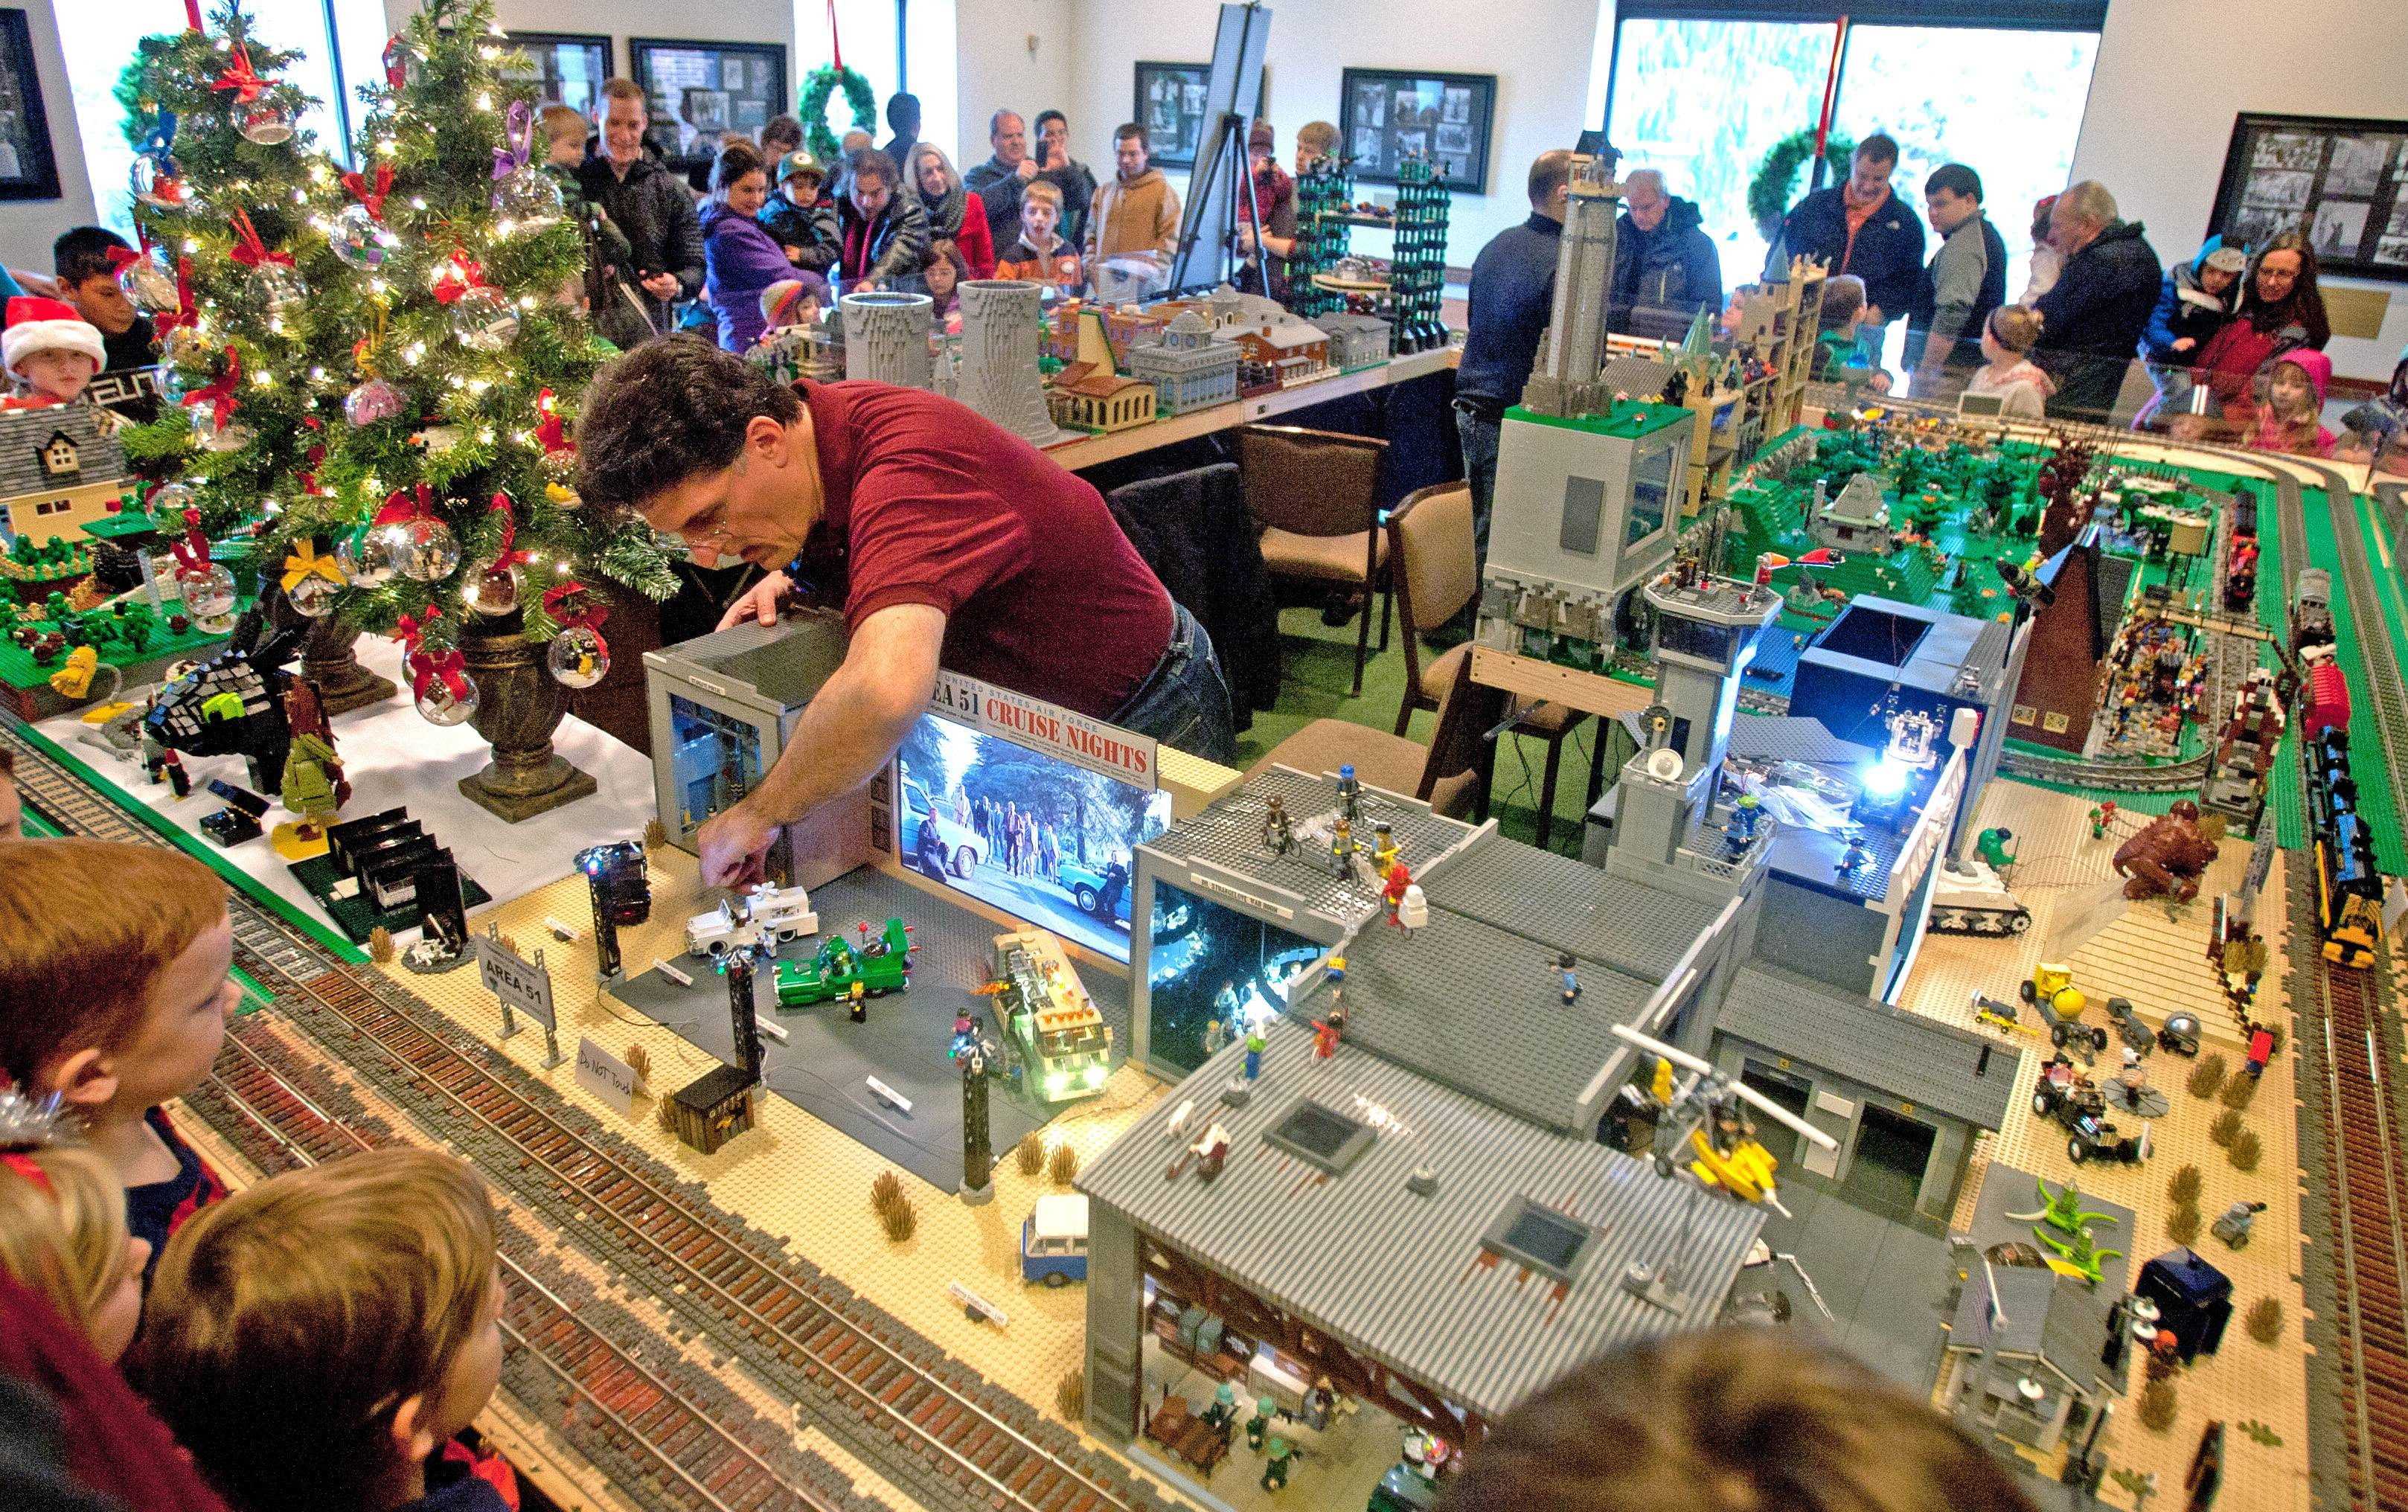 Brian Williams, of the Northern Illinois Lego Train Club, monitors a portion of the Christmas show at Cantigny Park in Wheaton.